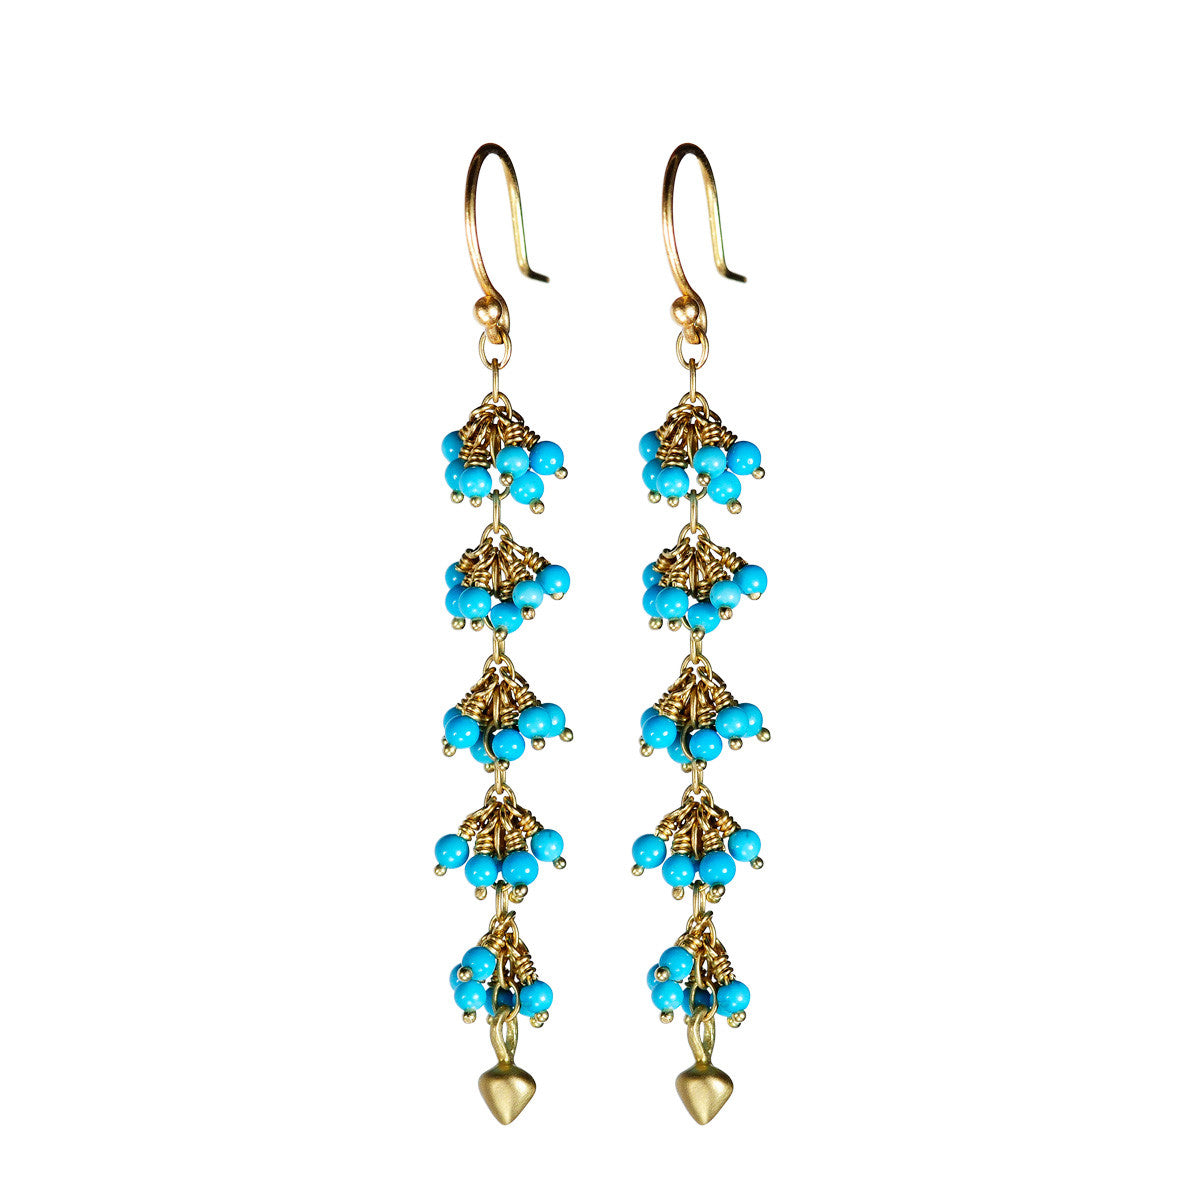 18K Gold 5 Beaded Turquoise Cluster Earrings with Lotus Buds